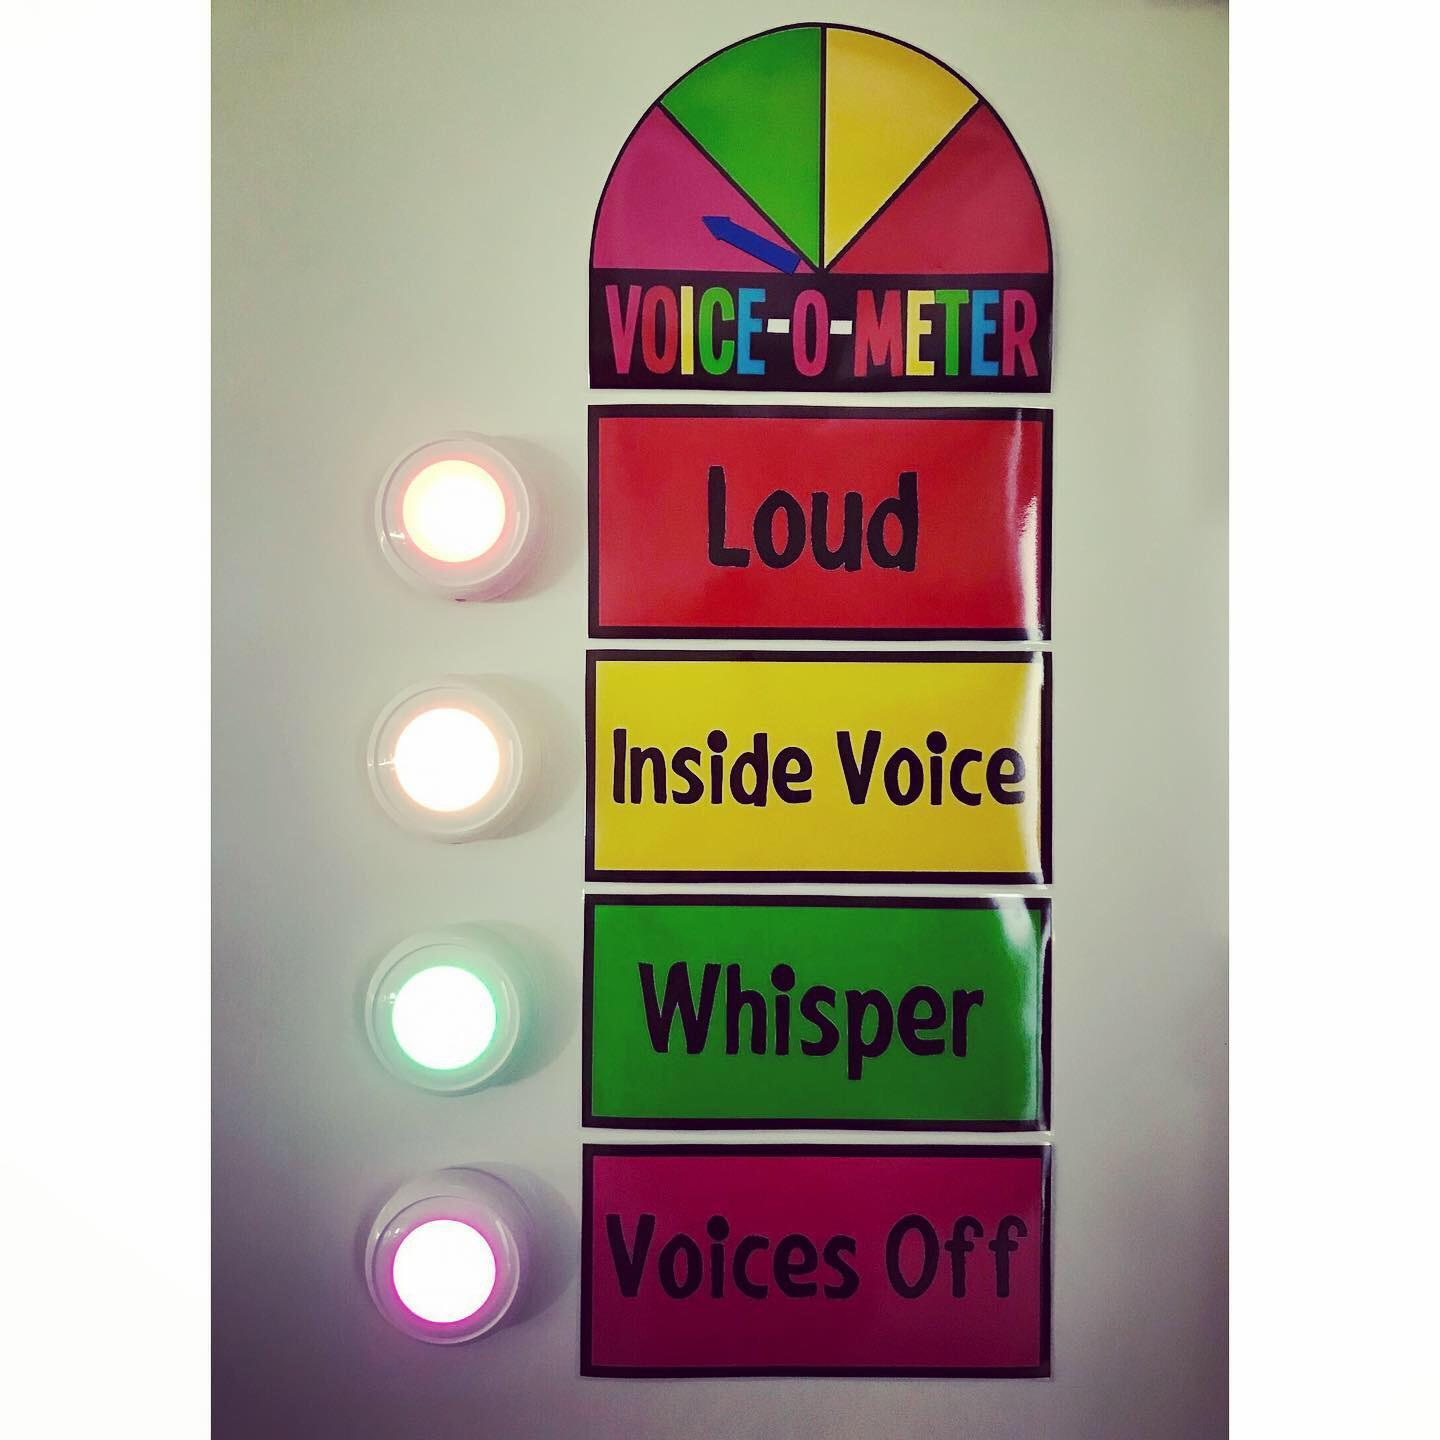 Voice-o-meter!